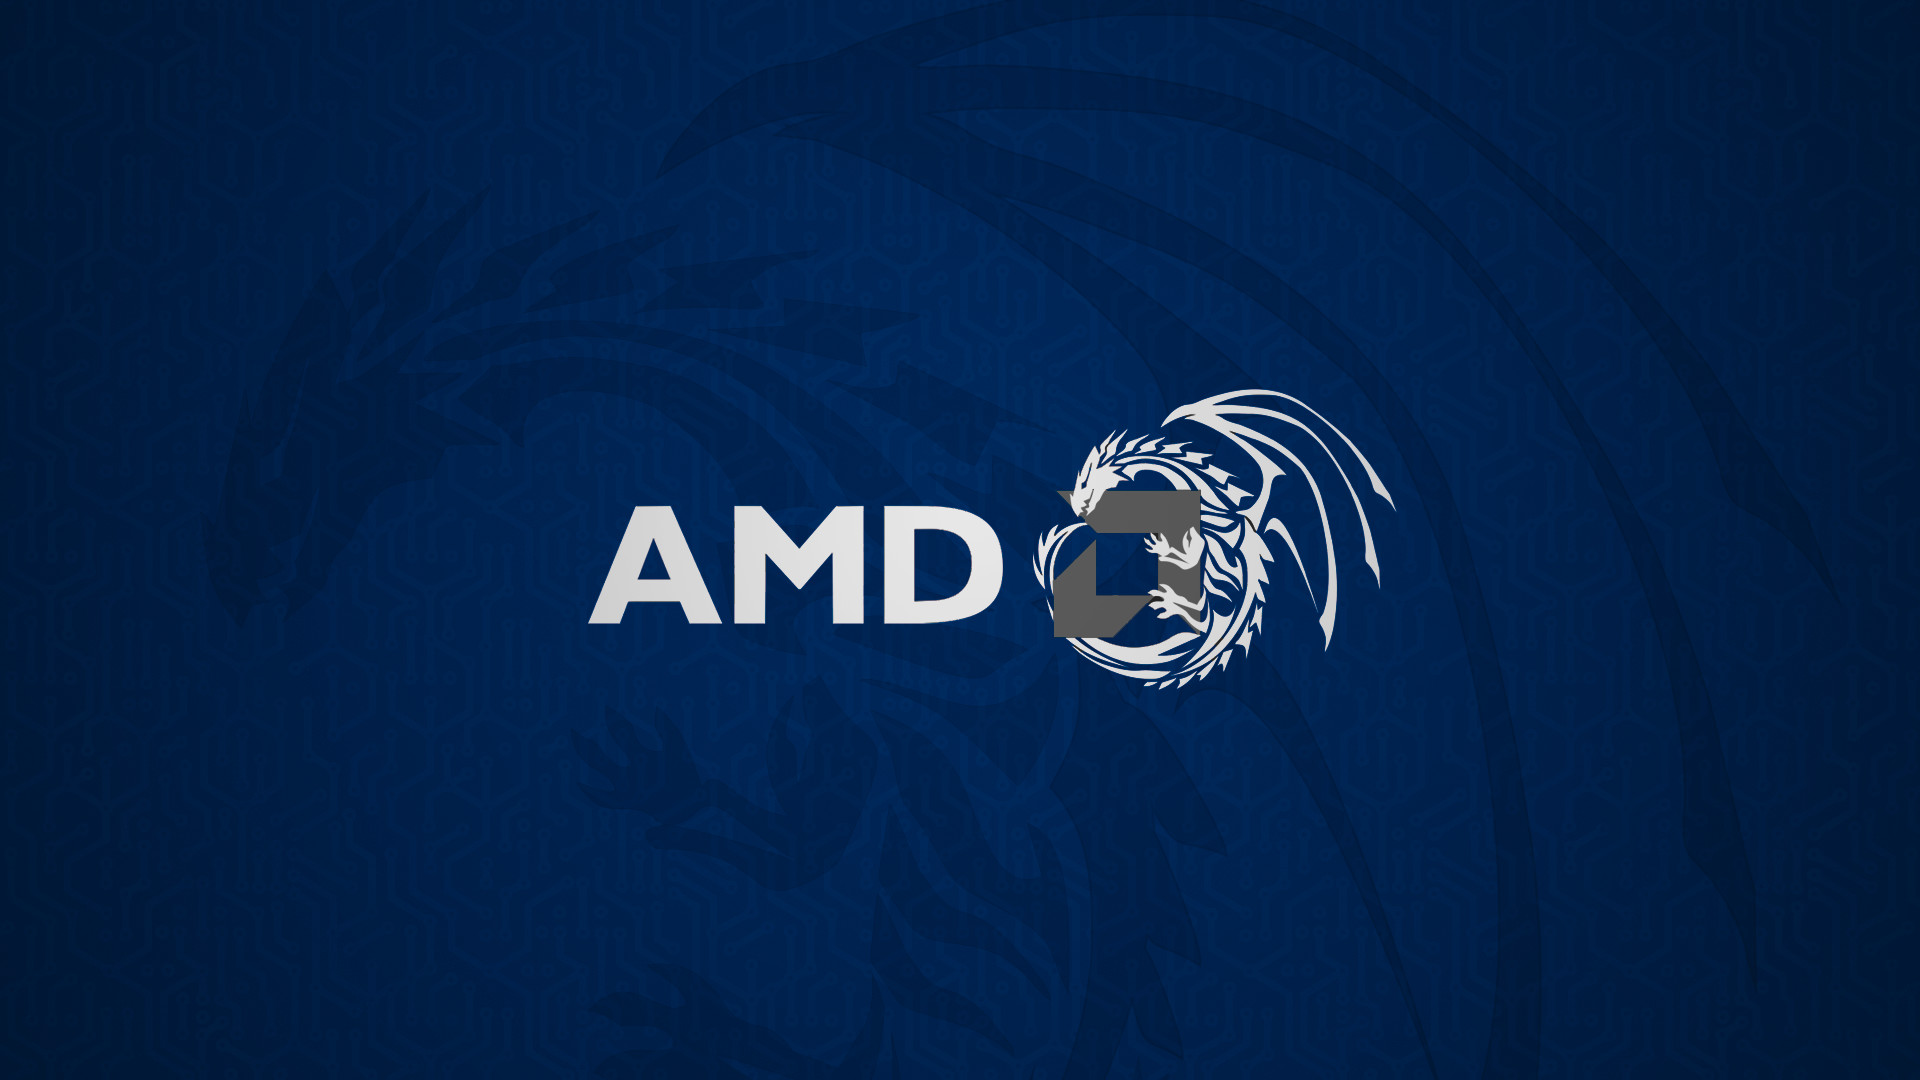 Res: 1920x1080, AMD Blue Dragon